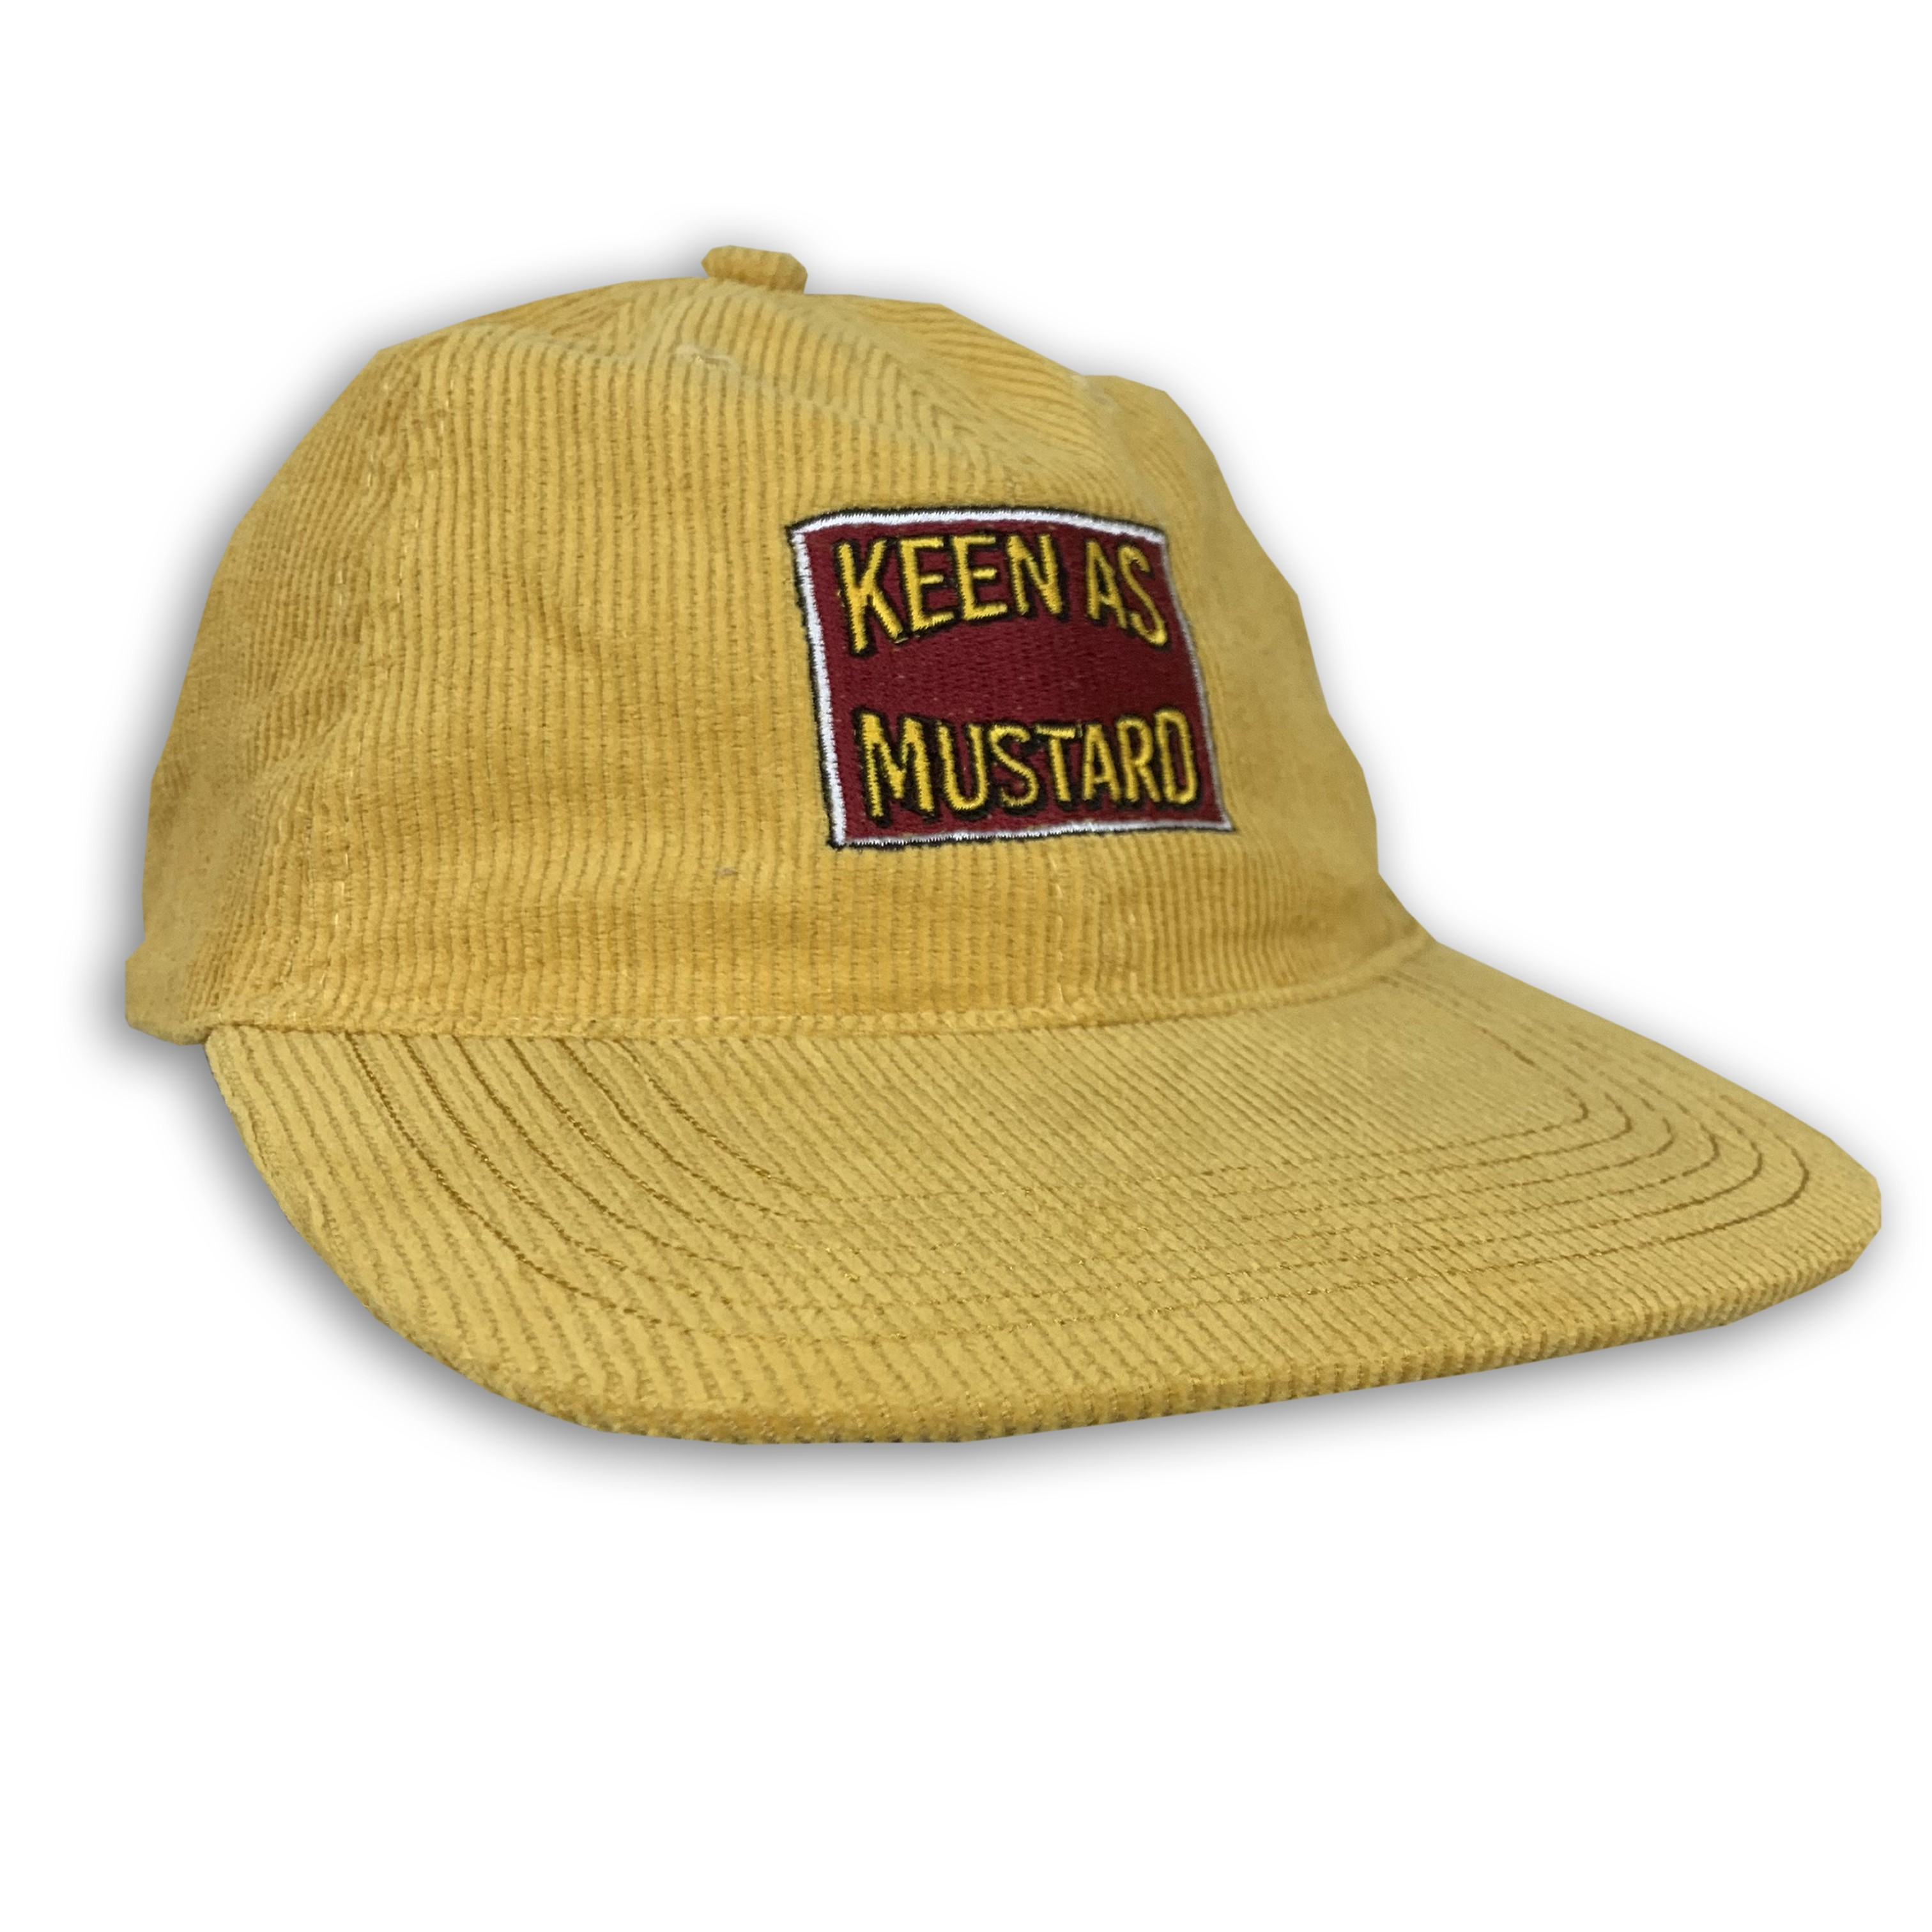 KEEN AS MUSTARD CORD HAT